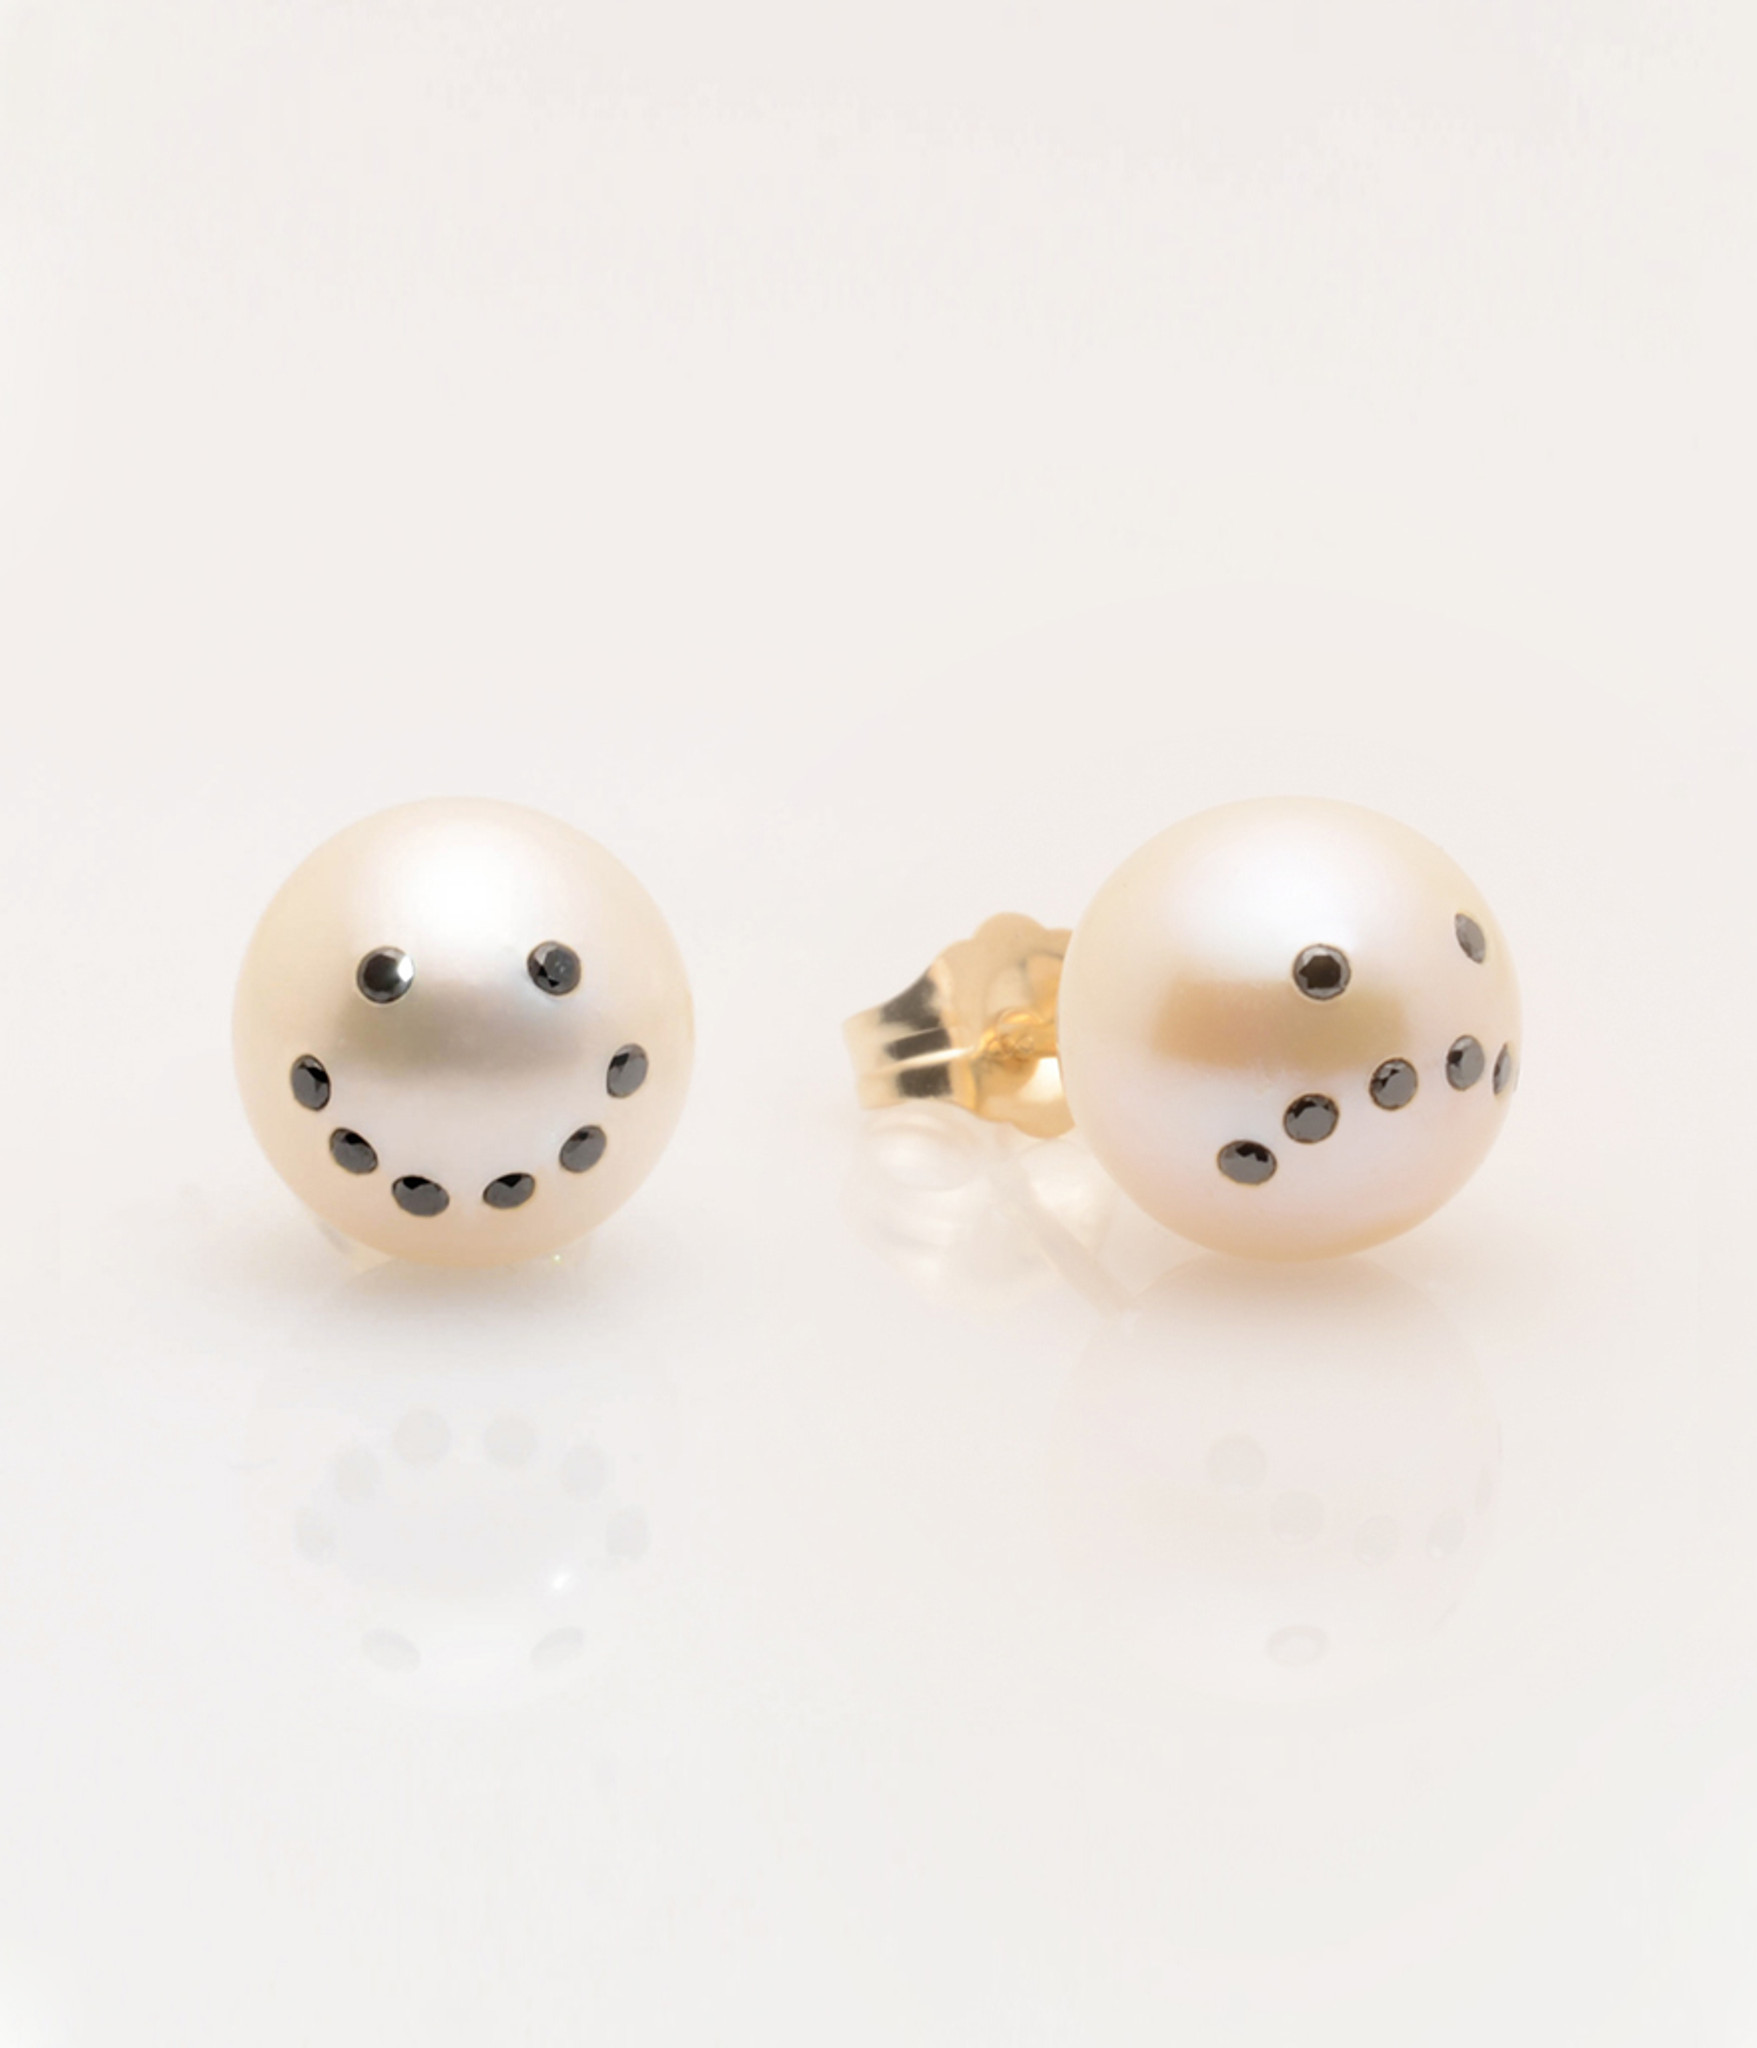 View 2 Of Cultured Freshwater Pearl Earrings With Smiley Drama Emoji  Diamond Pavè & 14k Gold